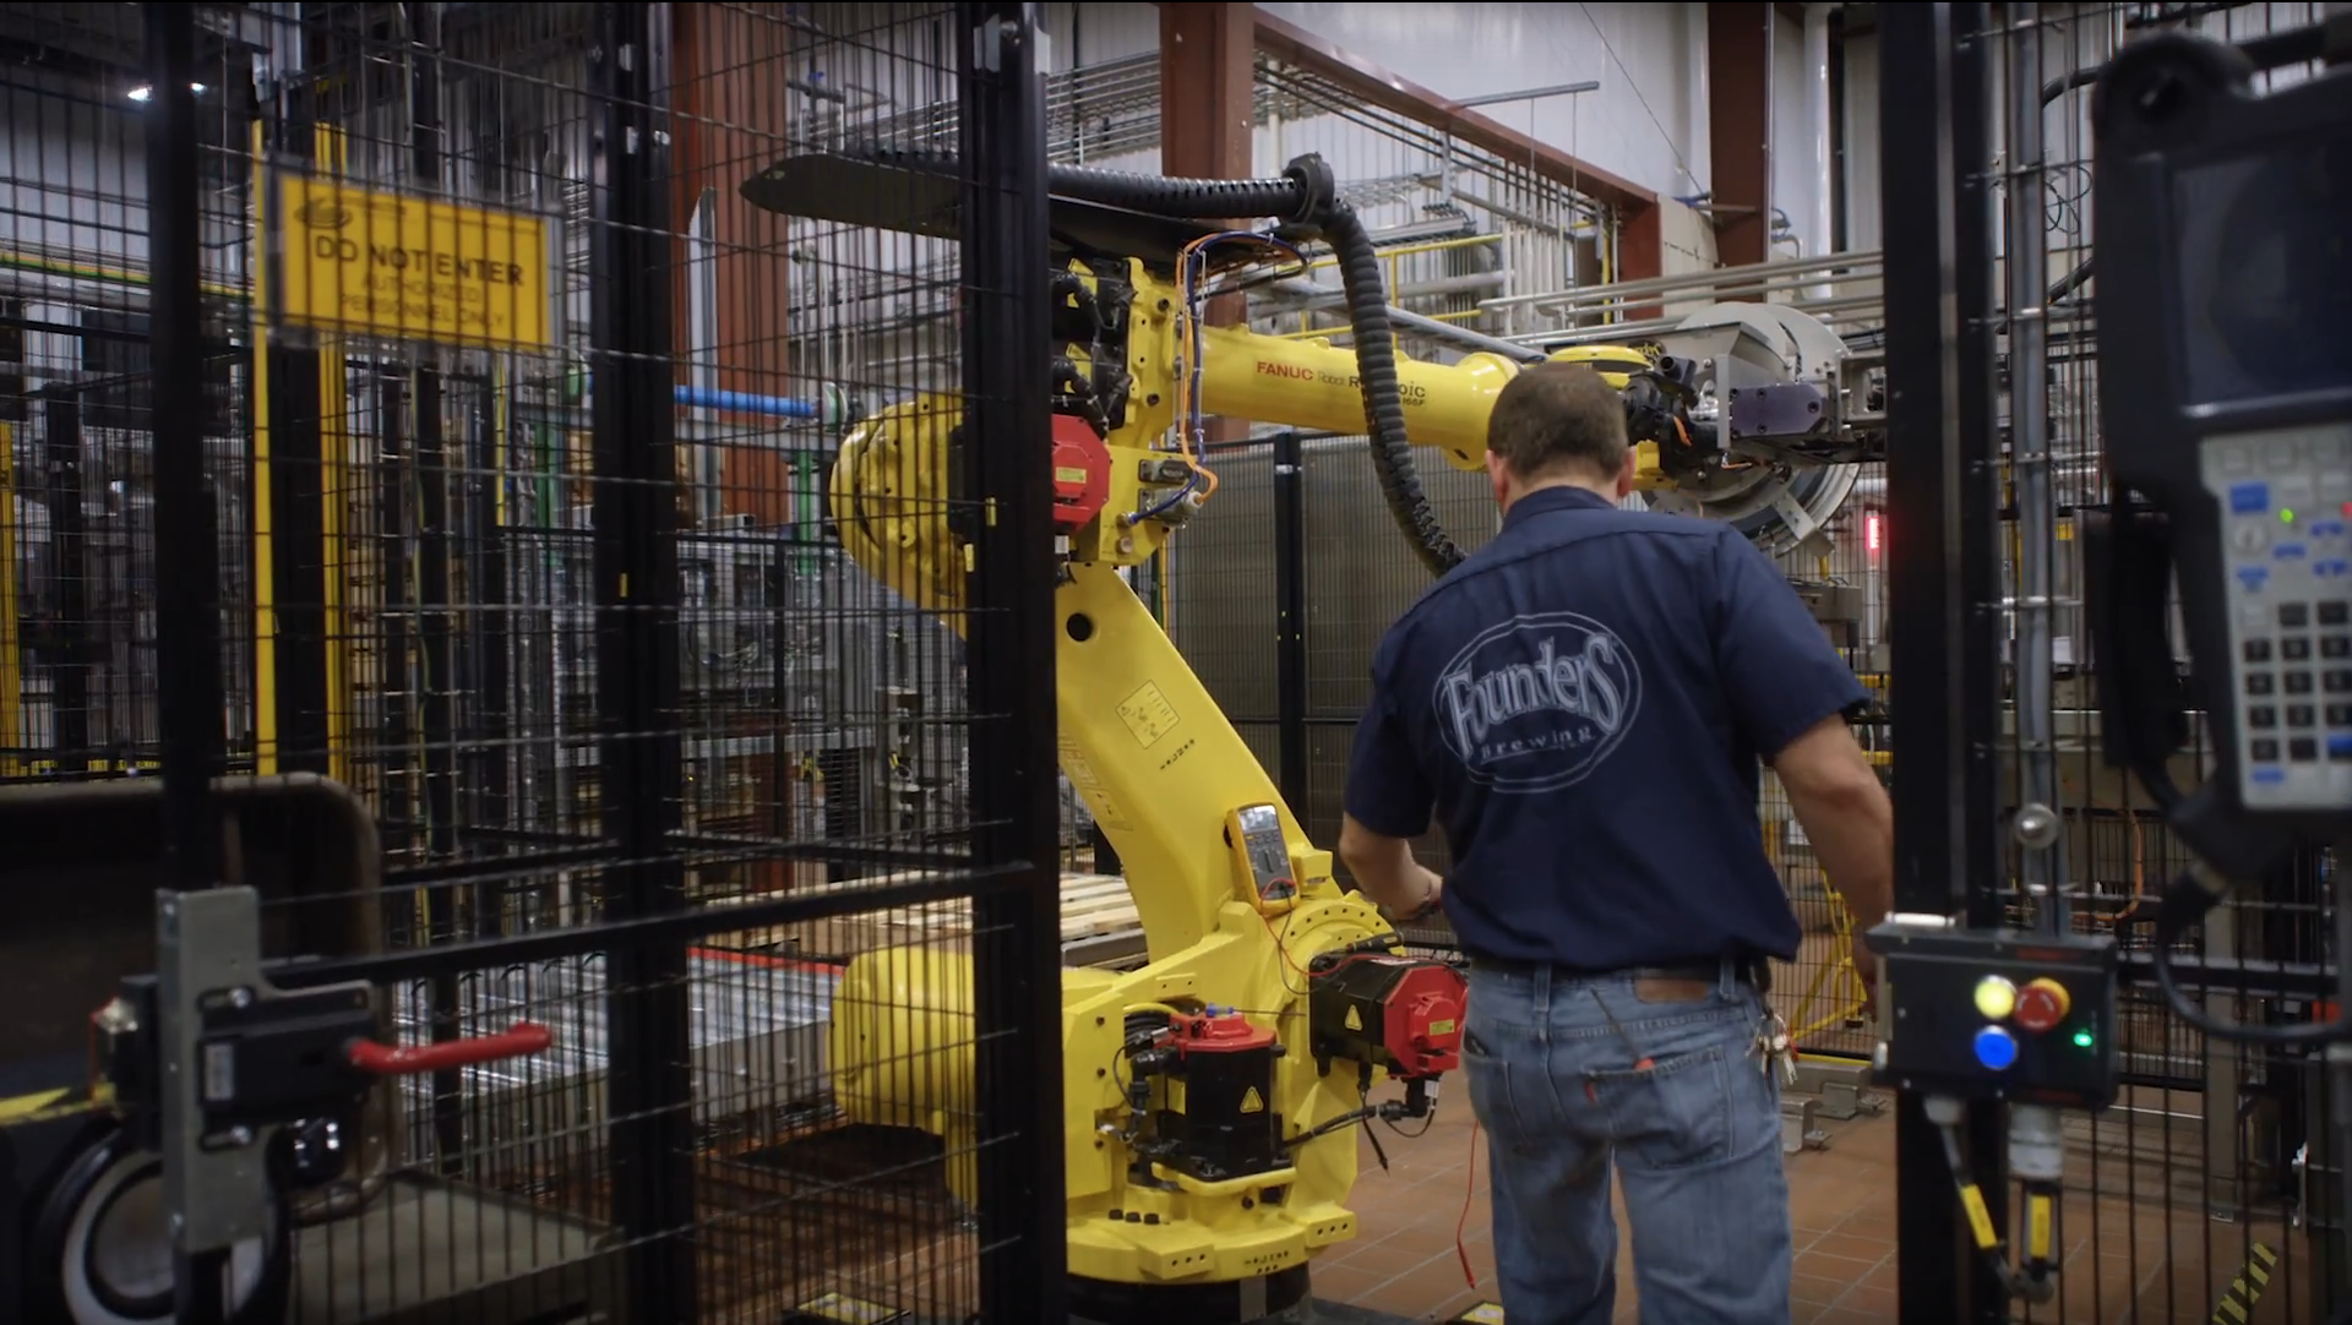 Problem-solving skills, hands-on experience and the ability to read technical manuals are a big part of being an industrial maintenance mechanic, one of the hottest jobs in Michigan right now.